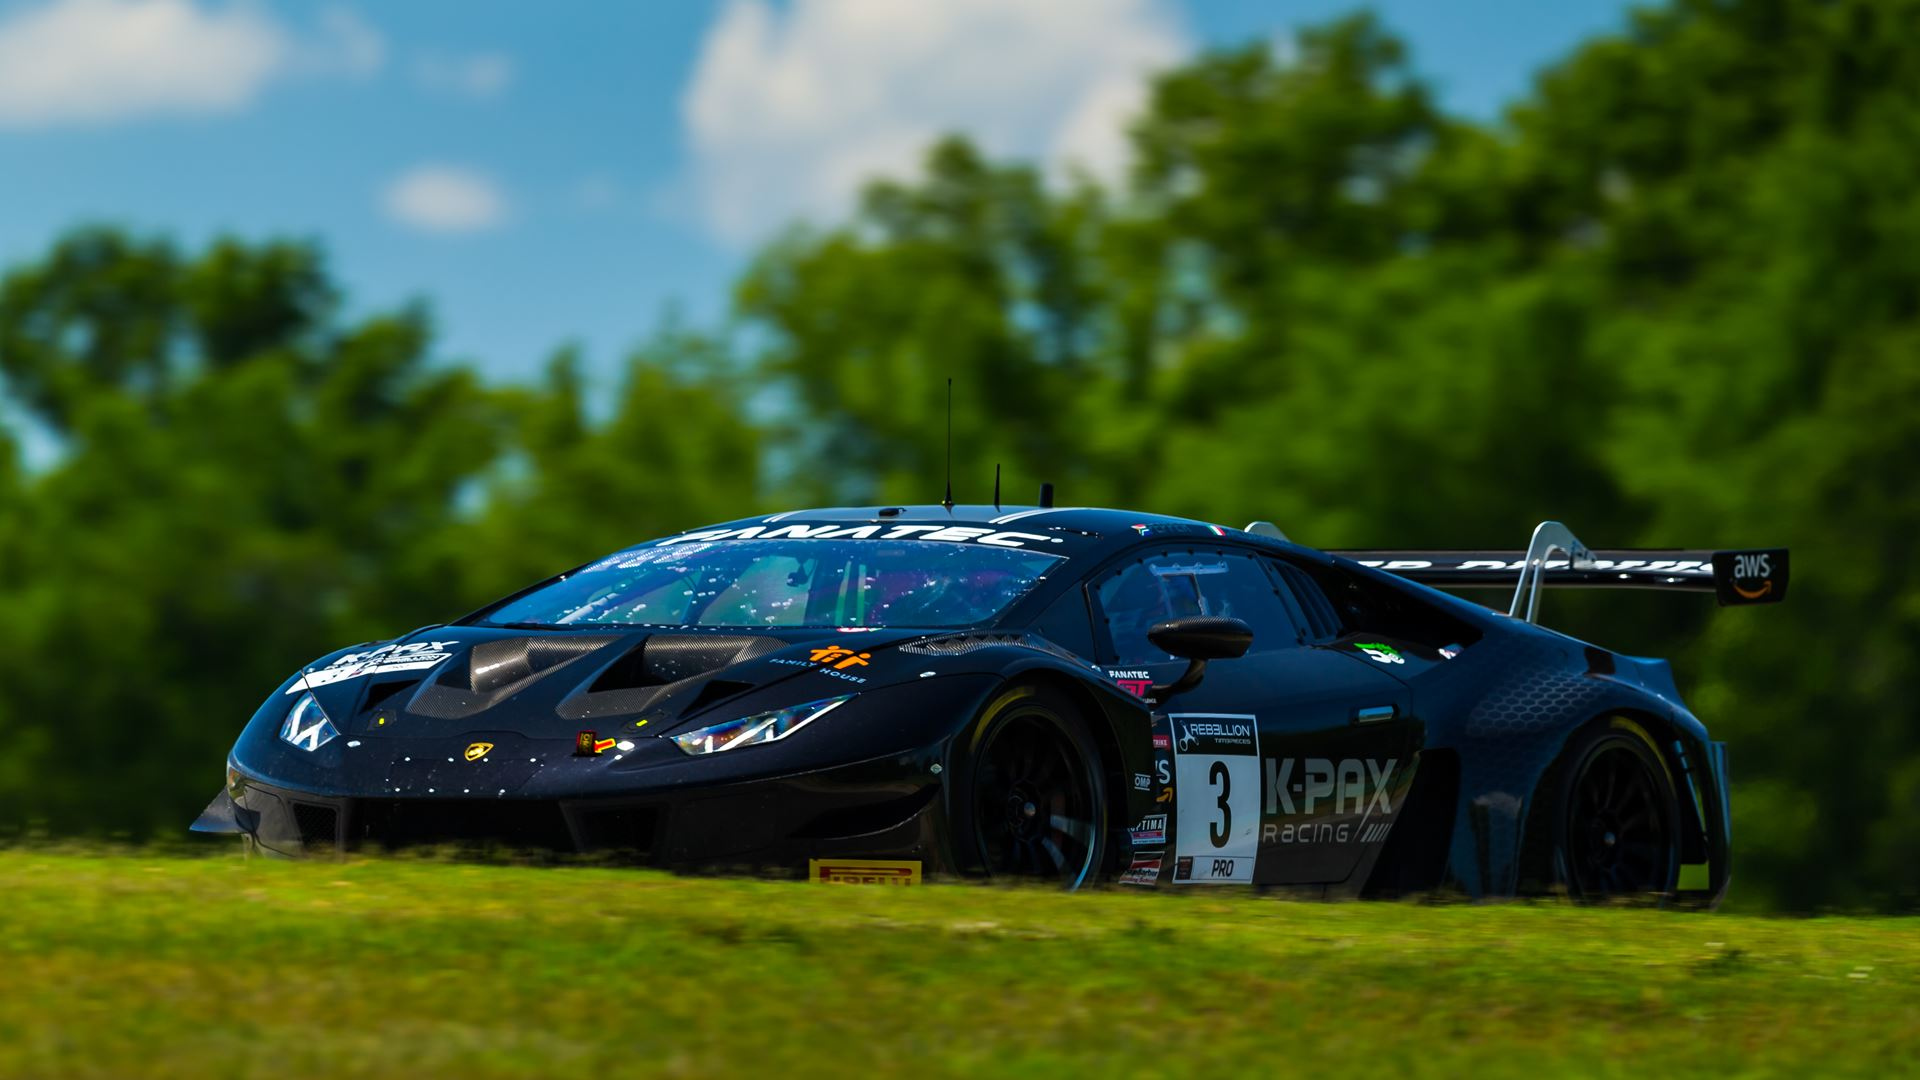 Lamborghini makes history with 100th GT3 victory thanks to another GT World Challenge America success - Image 4